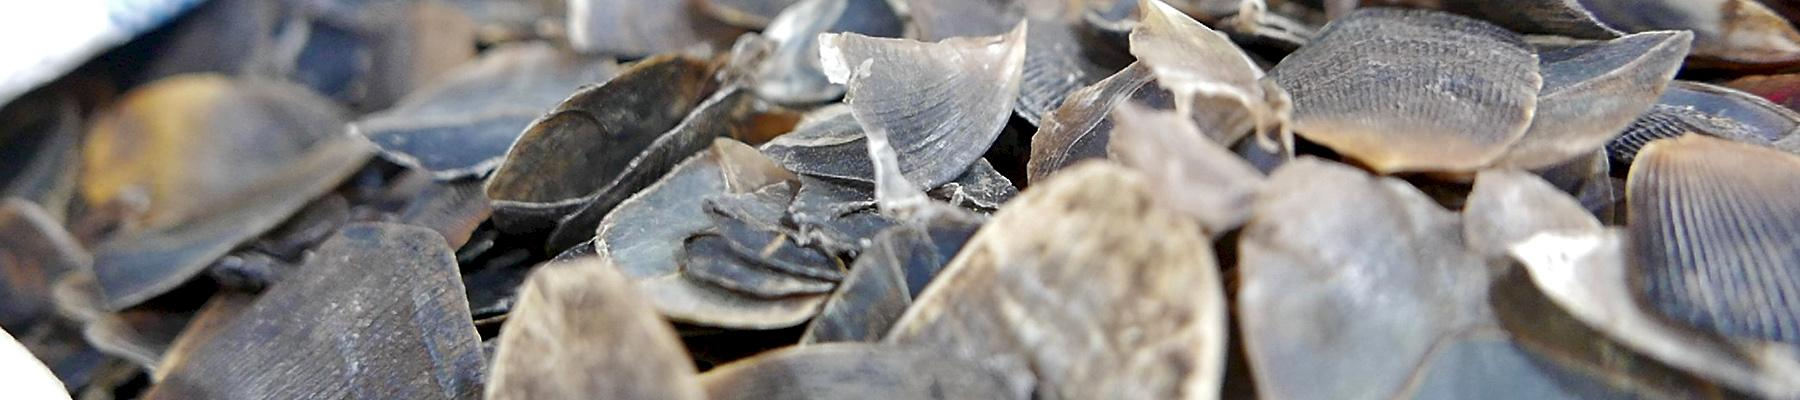 288kg of pangolin scales were seized at Kuala Lumpur airport © TRAFFIC